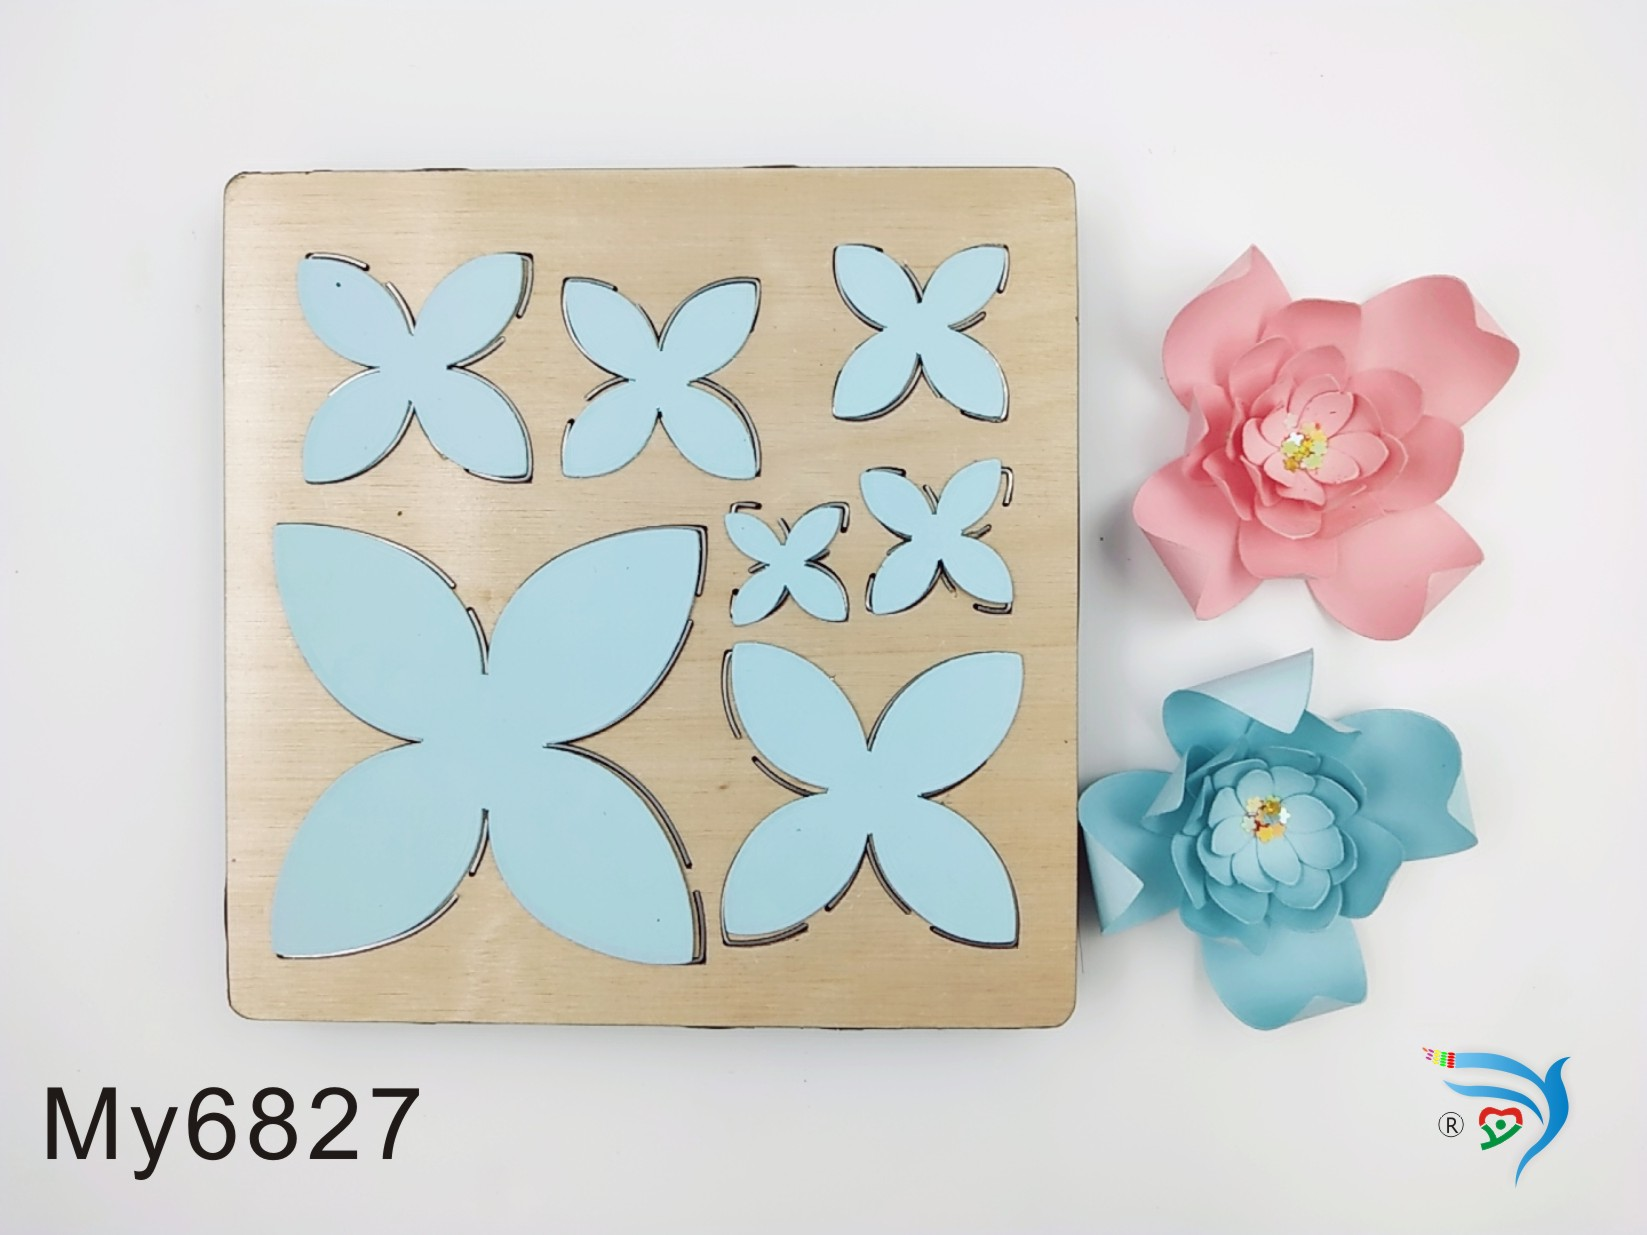 FLOWER2 muyu cutting die   new wooden mould cutting dies for scrapbooking Thickness 15.8mm-in Cutting Dies from Home & Garden    1